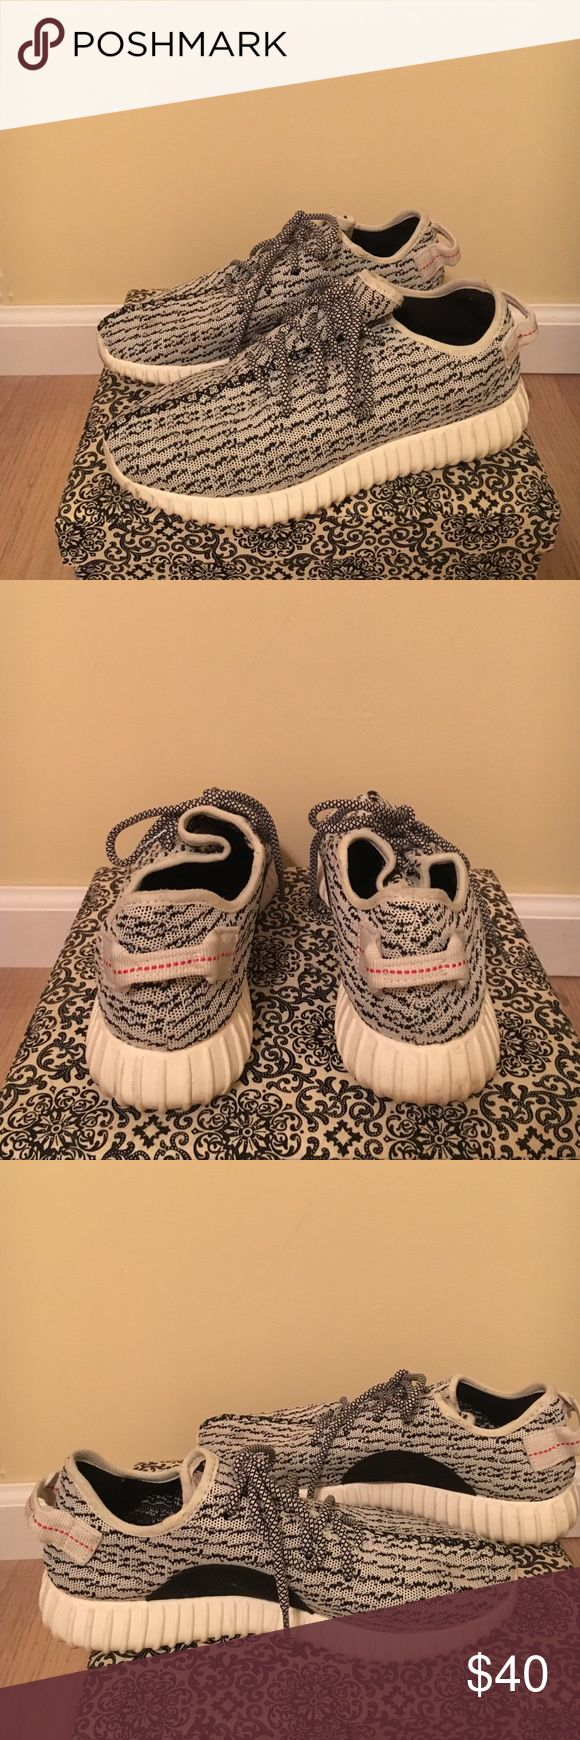 FAKE Yeezy sneakers FAKE yeezy sneakers there comfortable and have a few marks on them make me an offer!! They do run big im usually a 9 and fit into these Yeezy Shoes